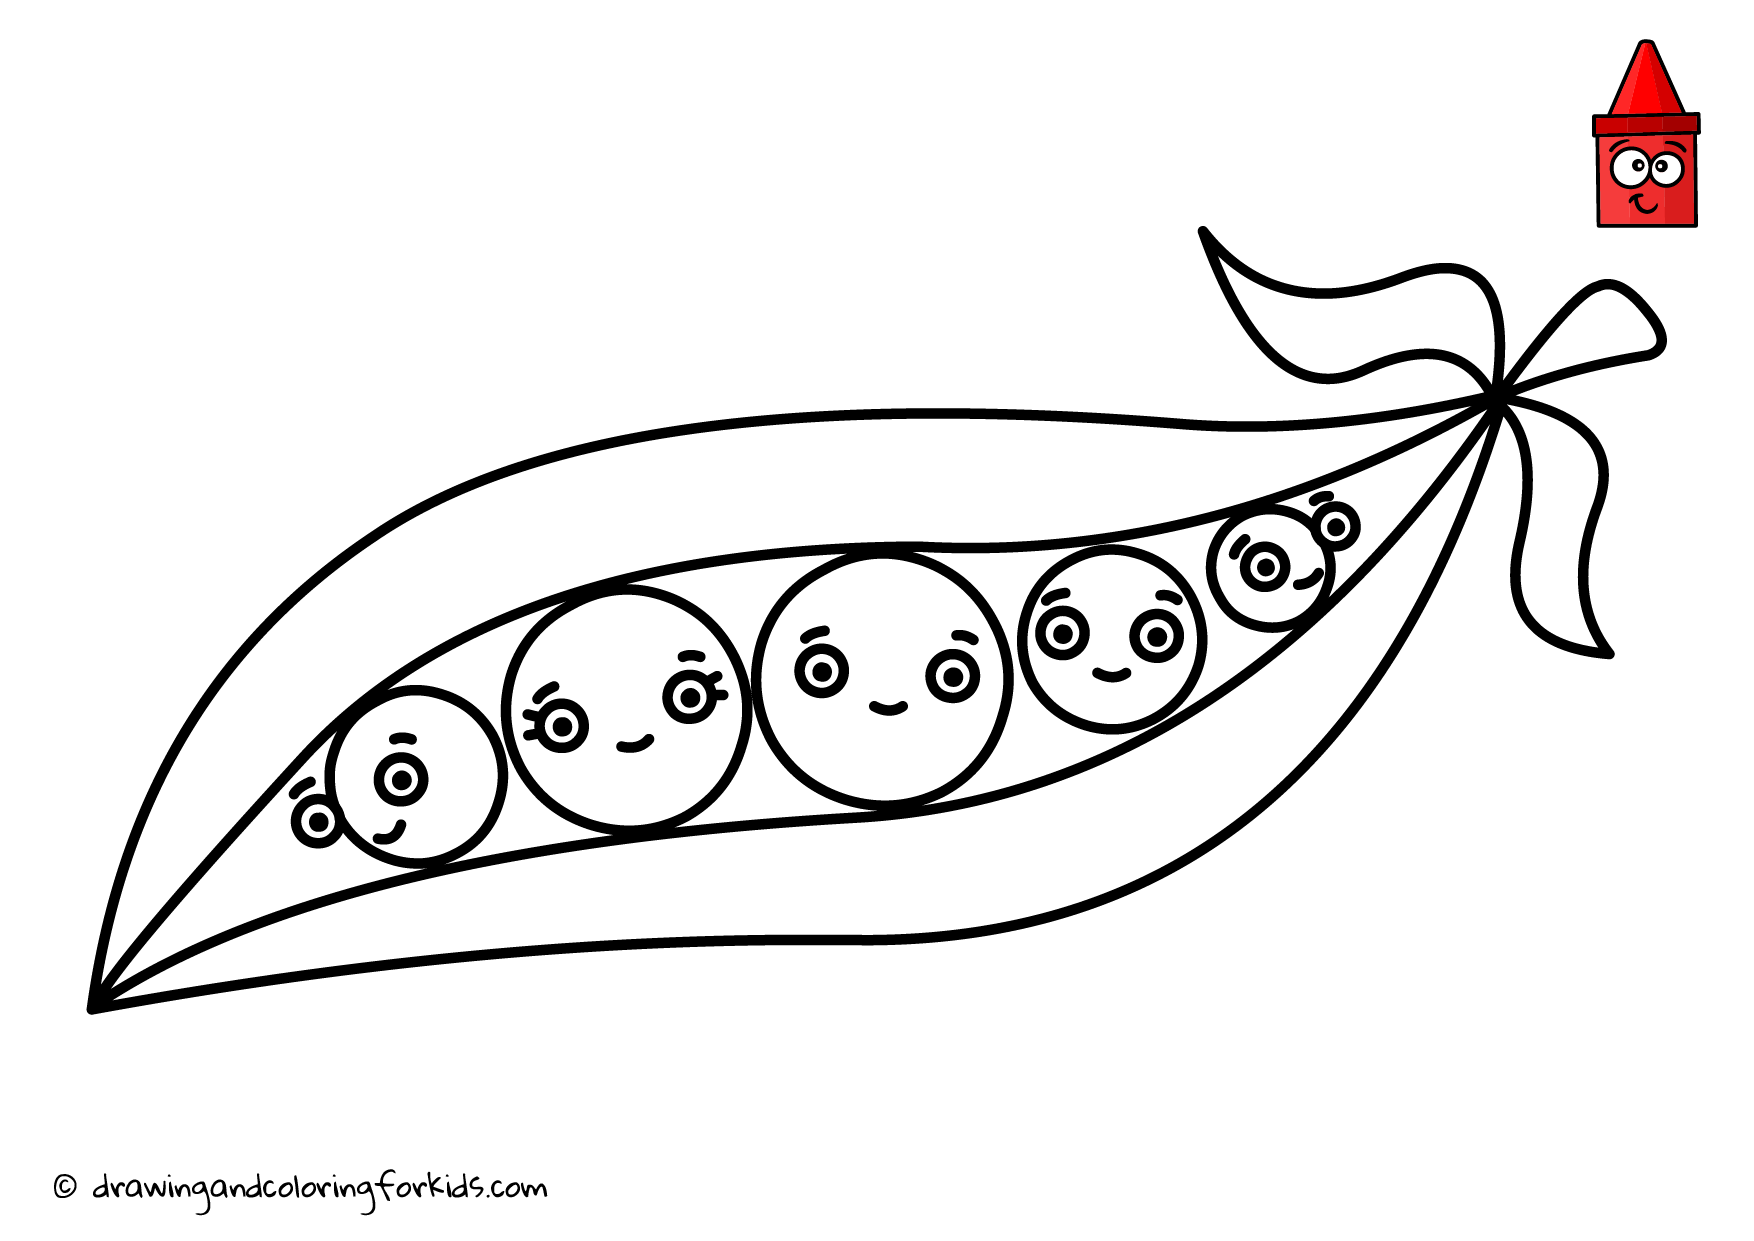 Drawing Vegetables Coloring Page Vegetables How To Draw Peas